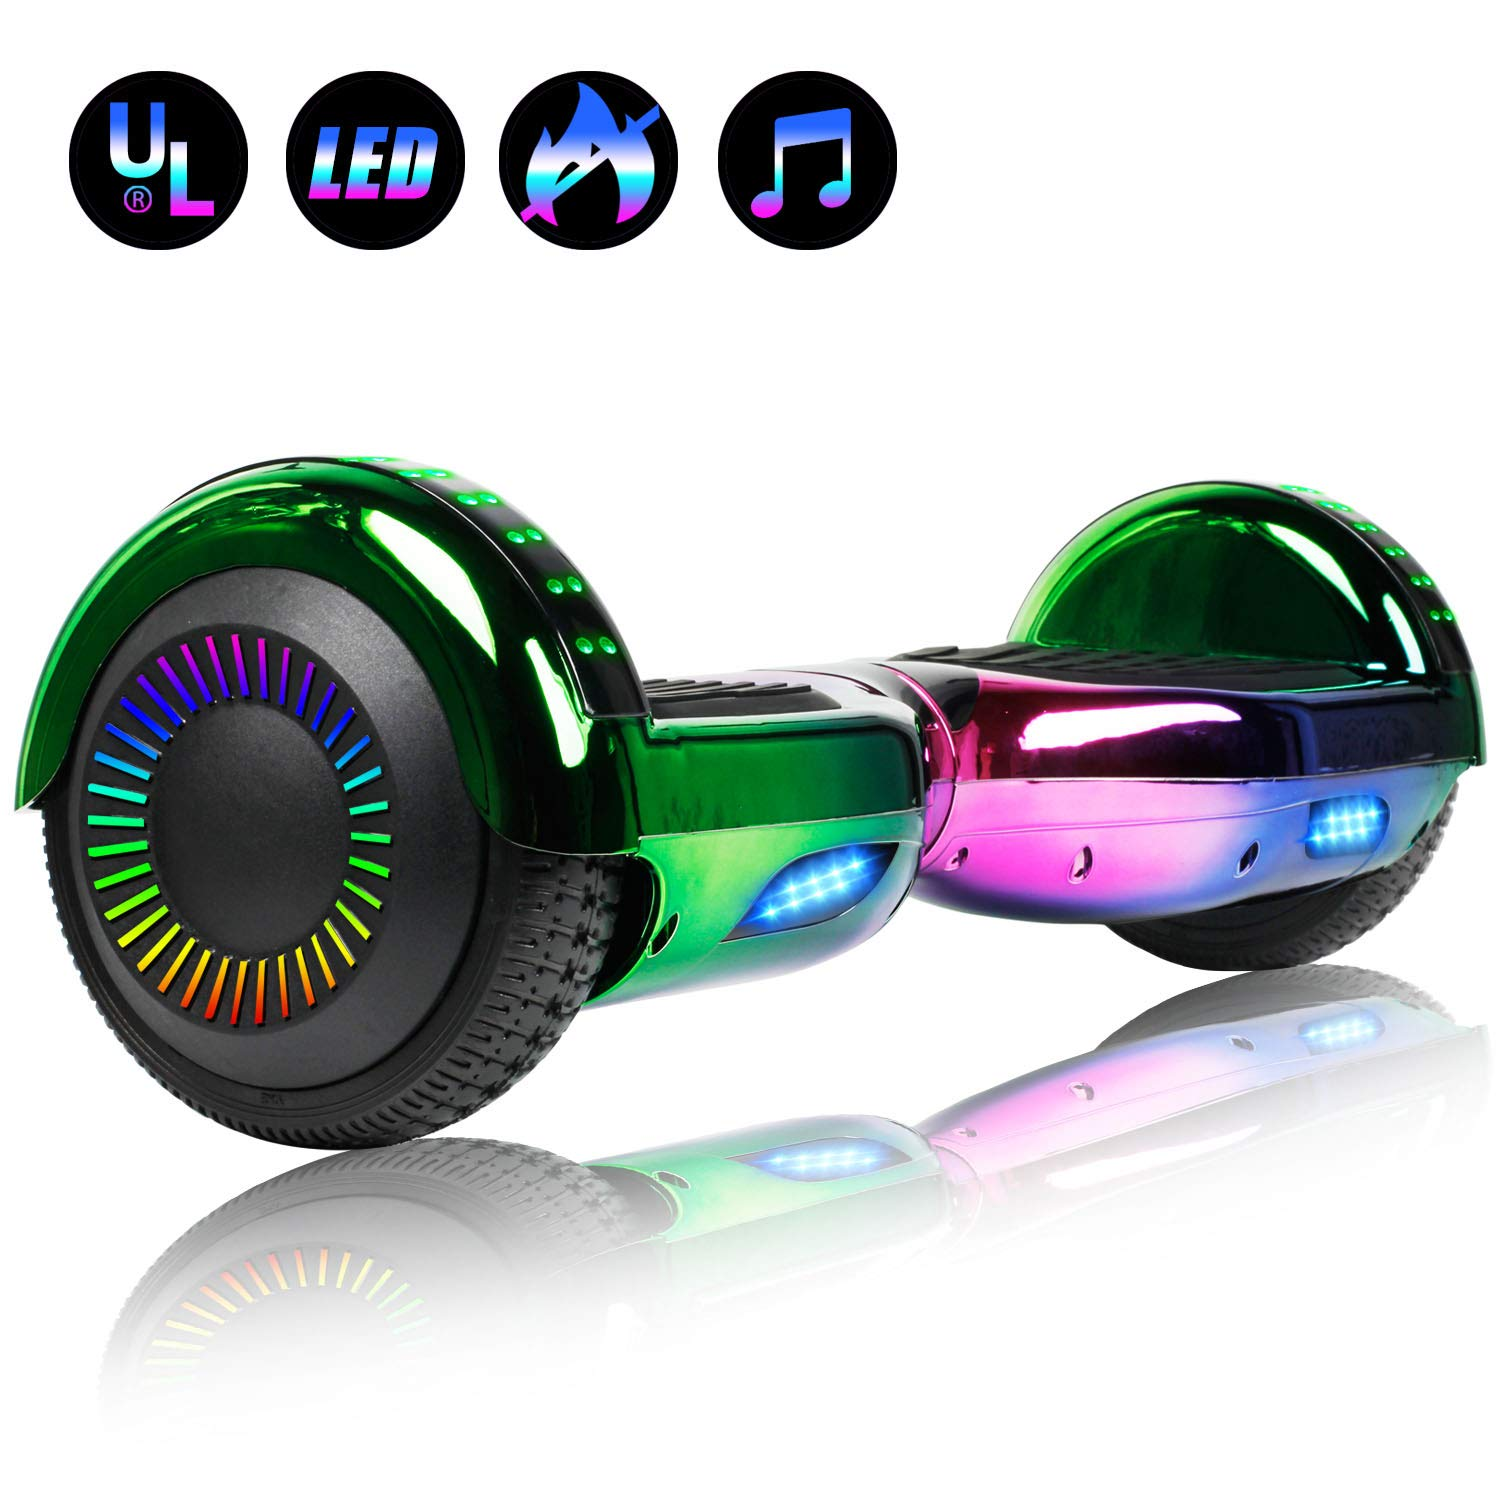 Felimoda Self Balancing Hoverboards with LED Light and Carrying Case,6.5 Inch Two Wheel Smart Electric Scooter for Kids and Adults-UL2272 Certified - Cheap Hoverboards under 250$